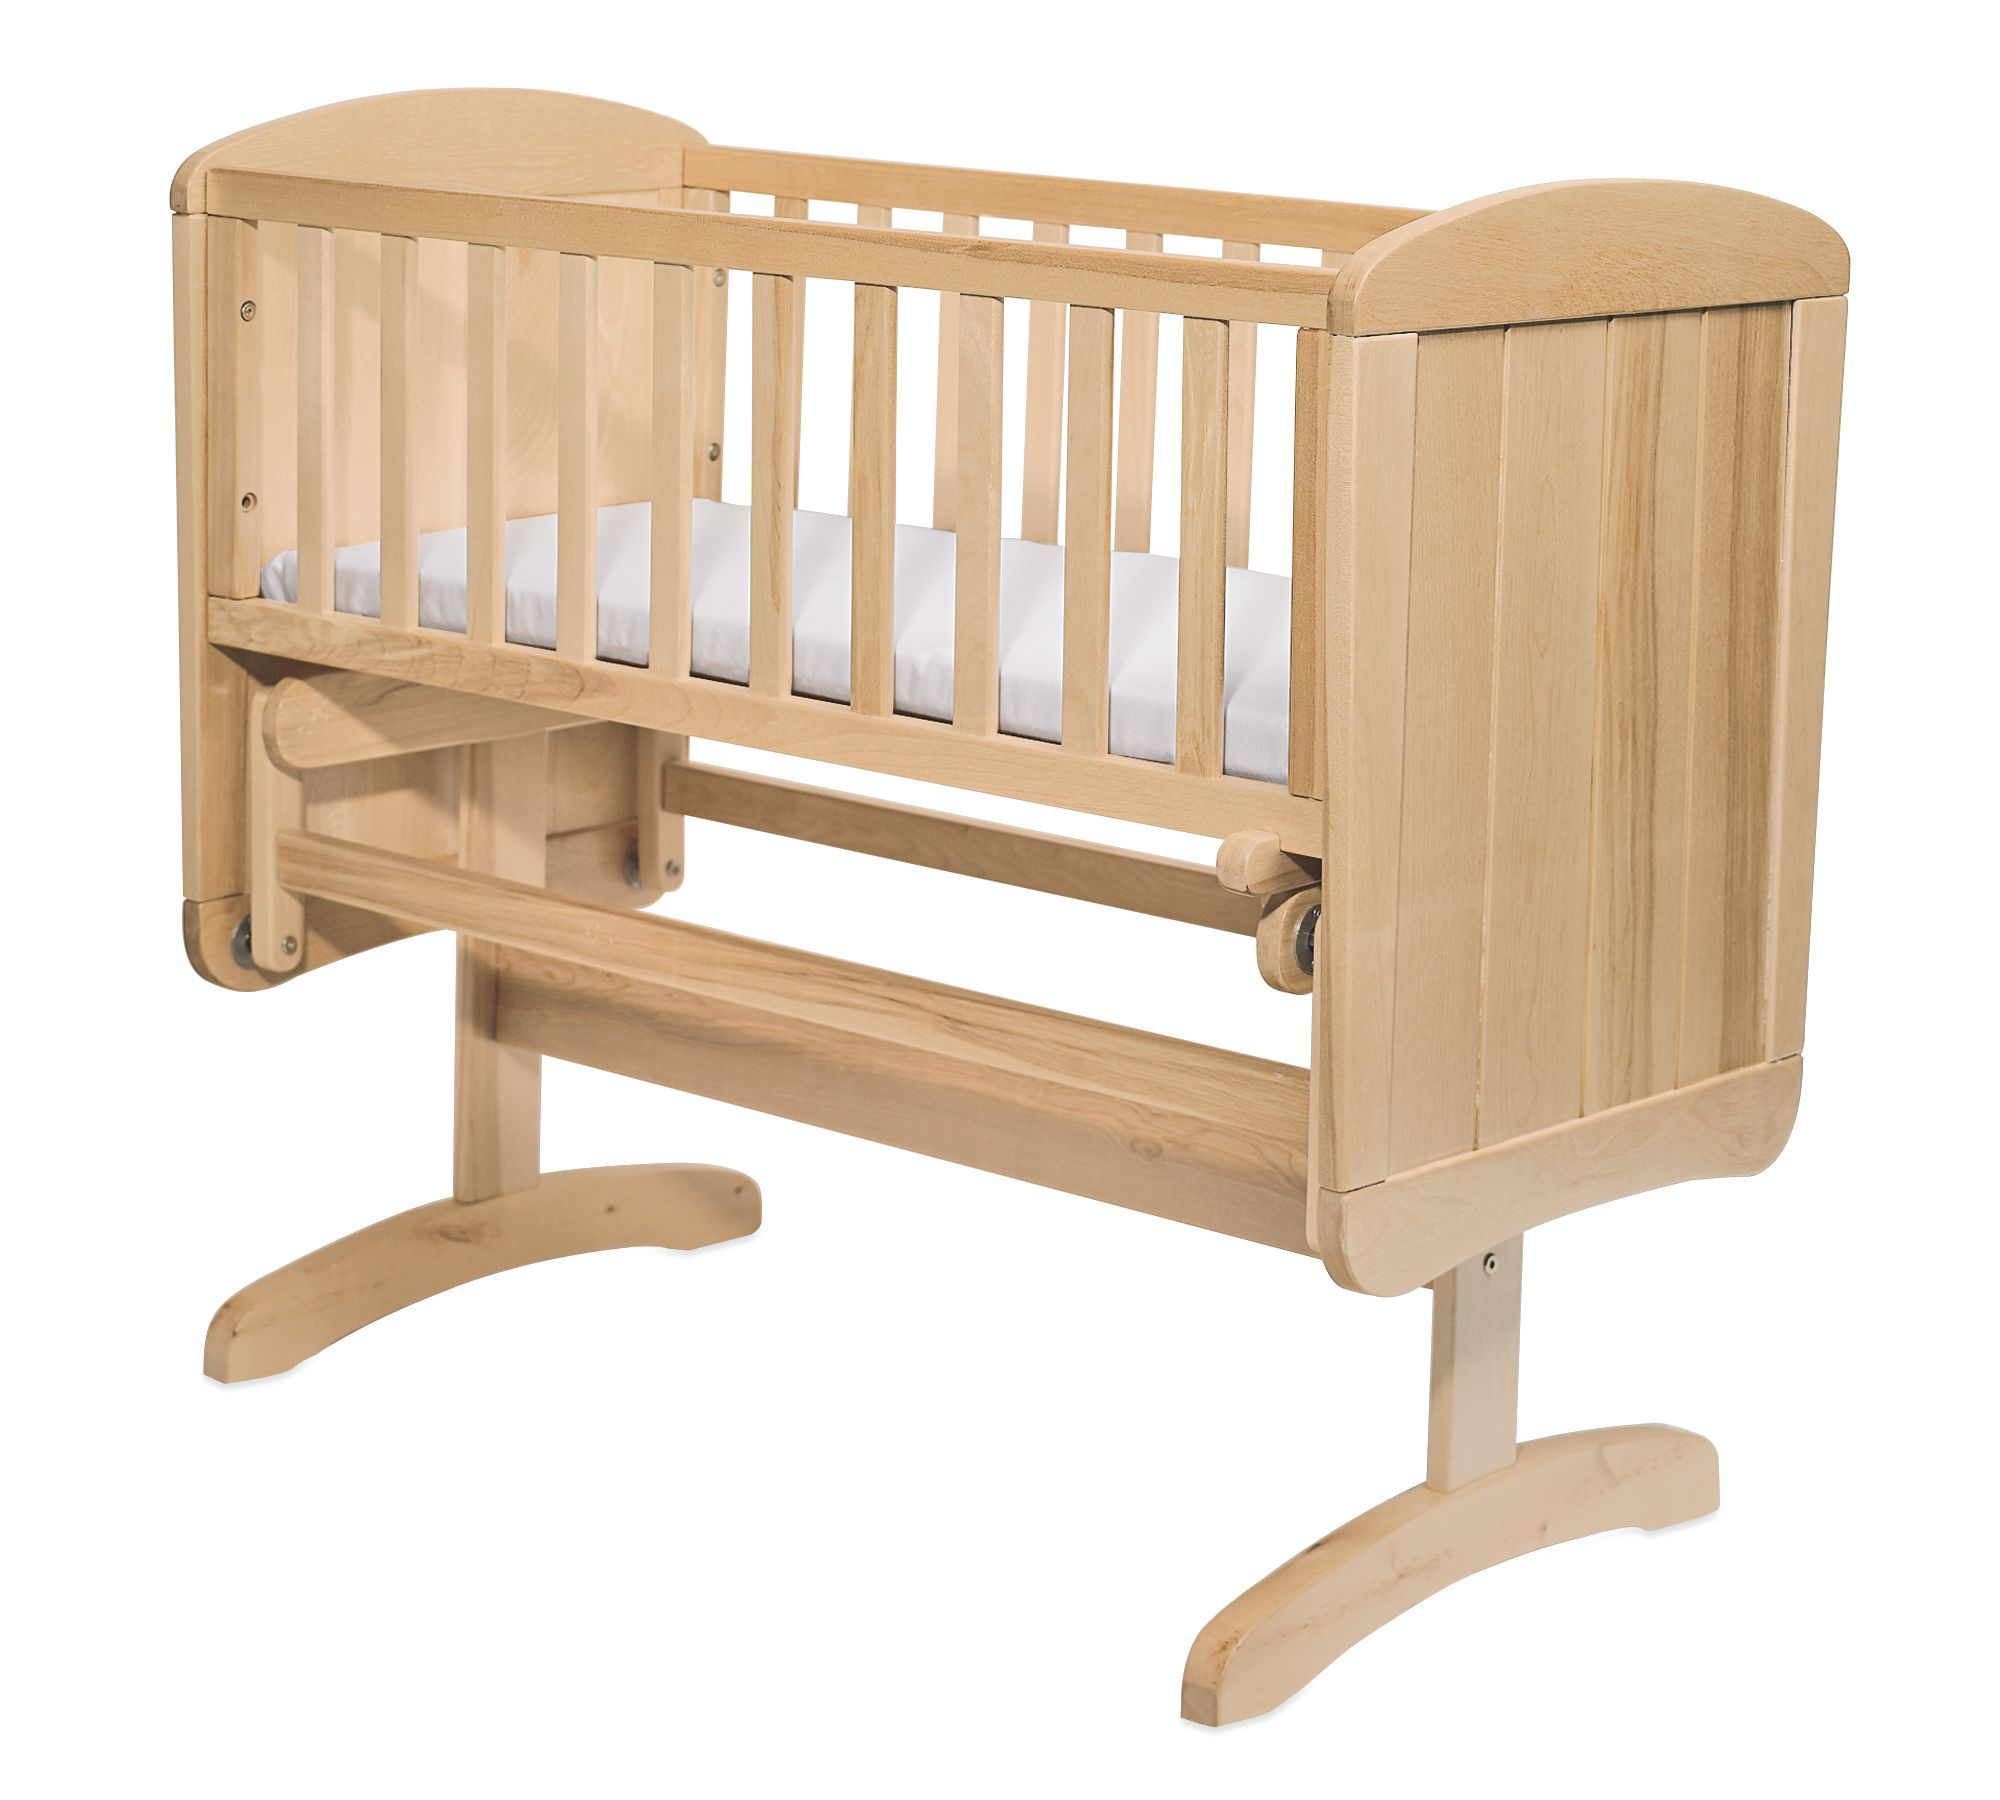 Crib for sale in cebu - Baby Cribs For Sale Used Crib For Sale In Bangalore Used Crib For Sale Edmonton